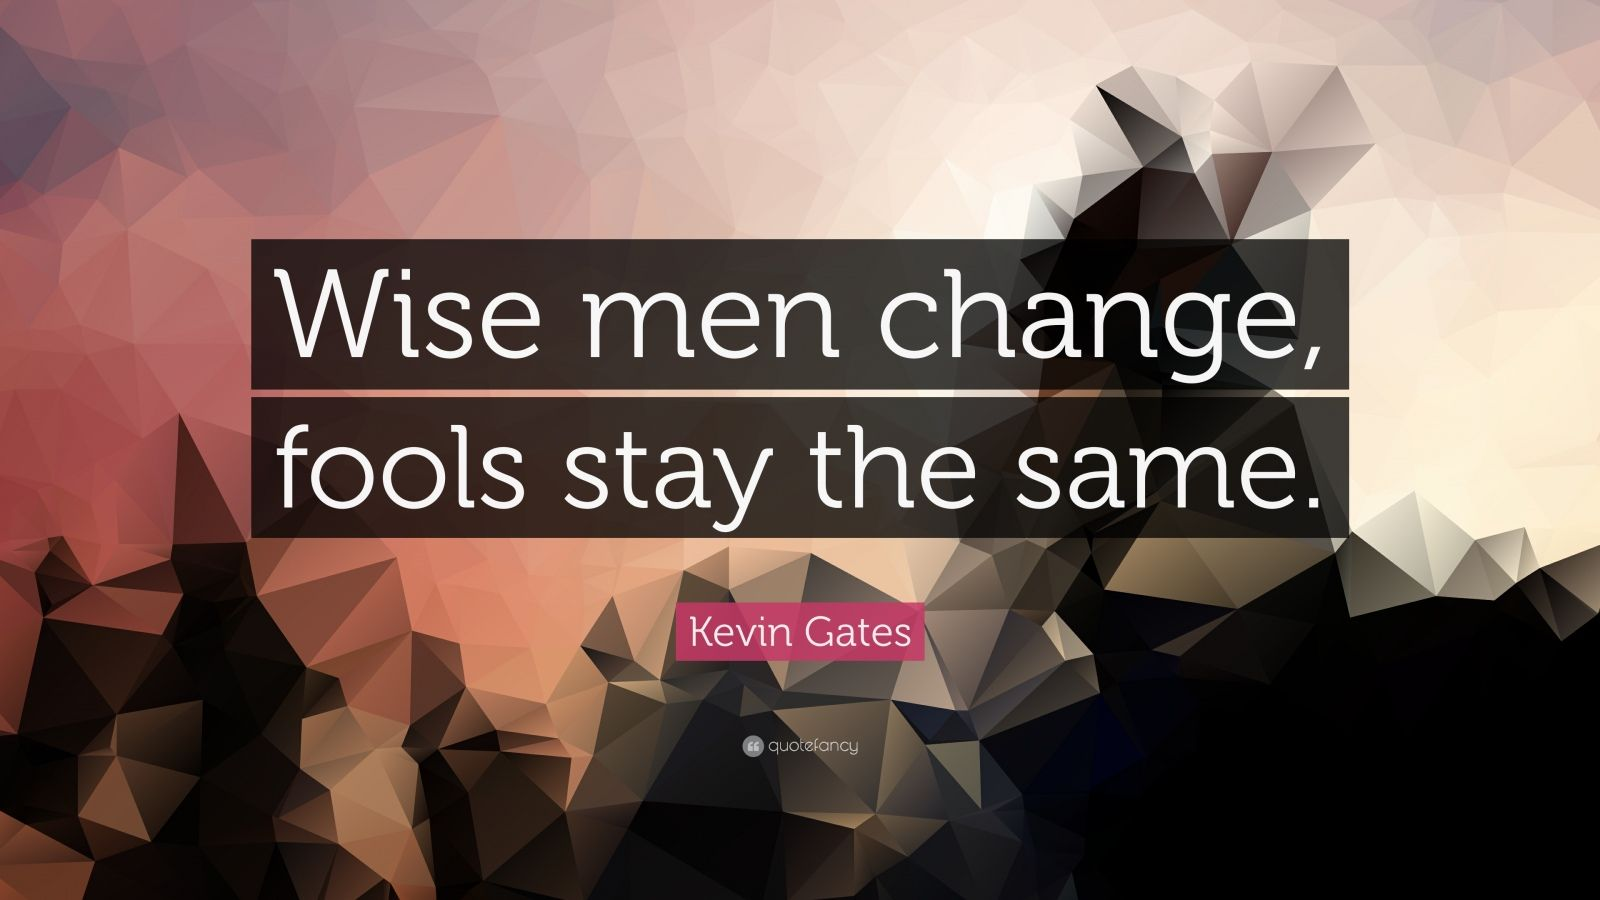 Steve Jobs Motivational Quotes Wallpaper Kevin Gates Quote Wise Men Change Fools Stay The Same